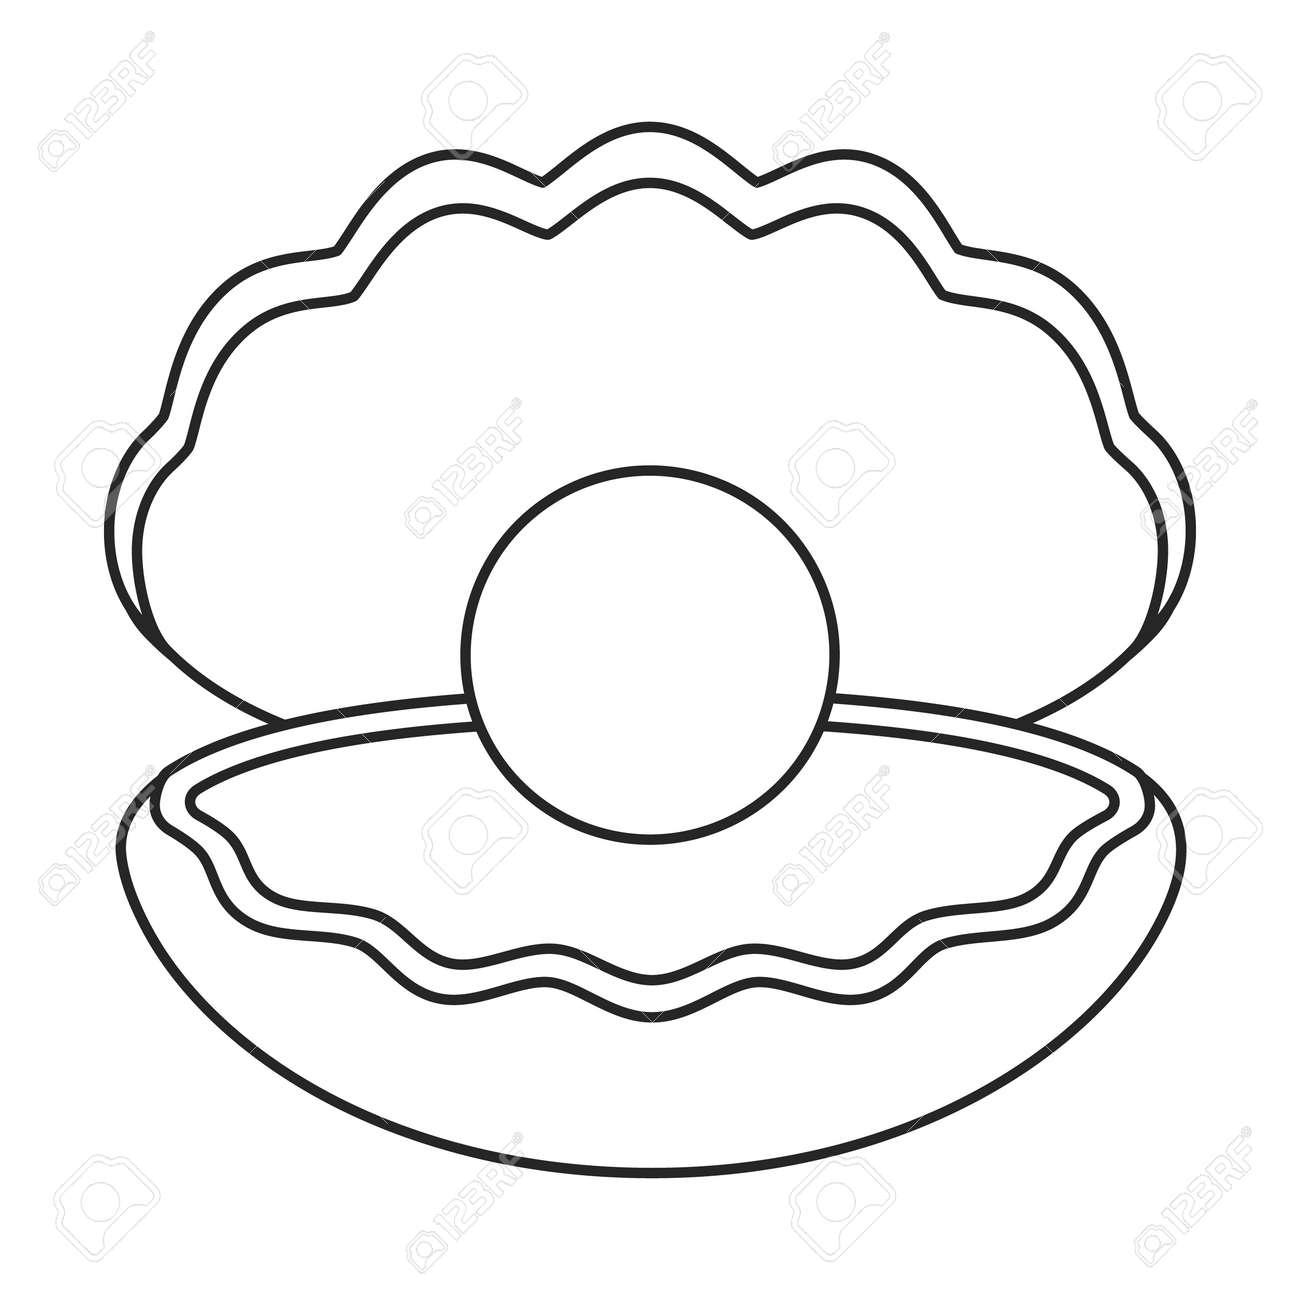 Pearl shell vector outline icon. Vector illustration pearl shell on white background. Isolated outline illustration icon of seashell - 168841078